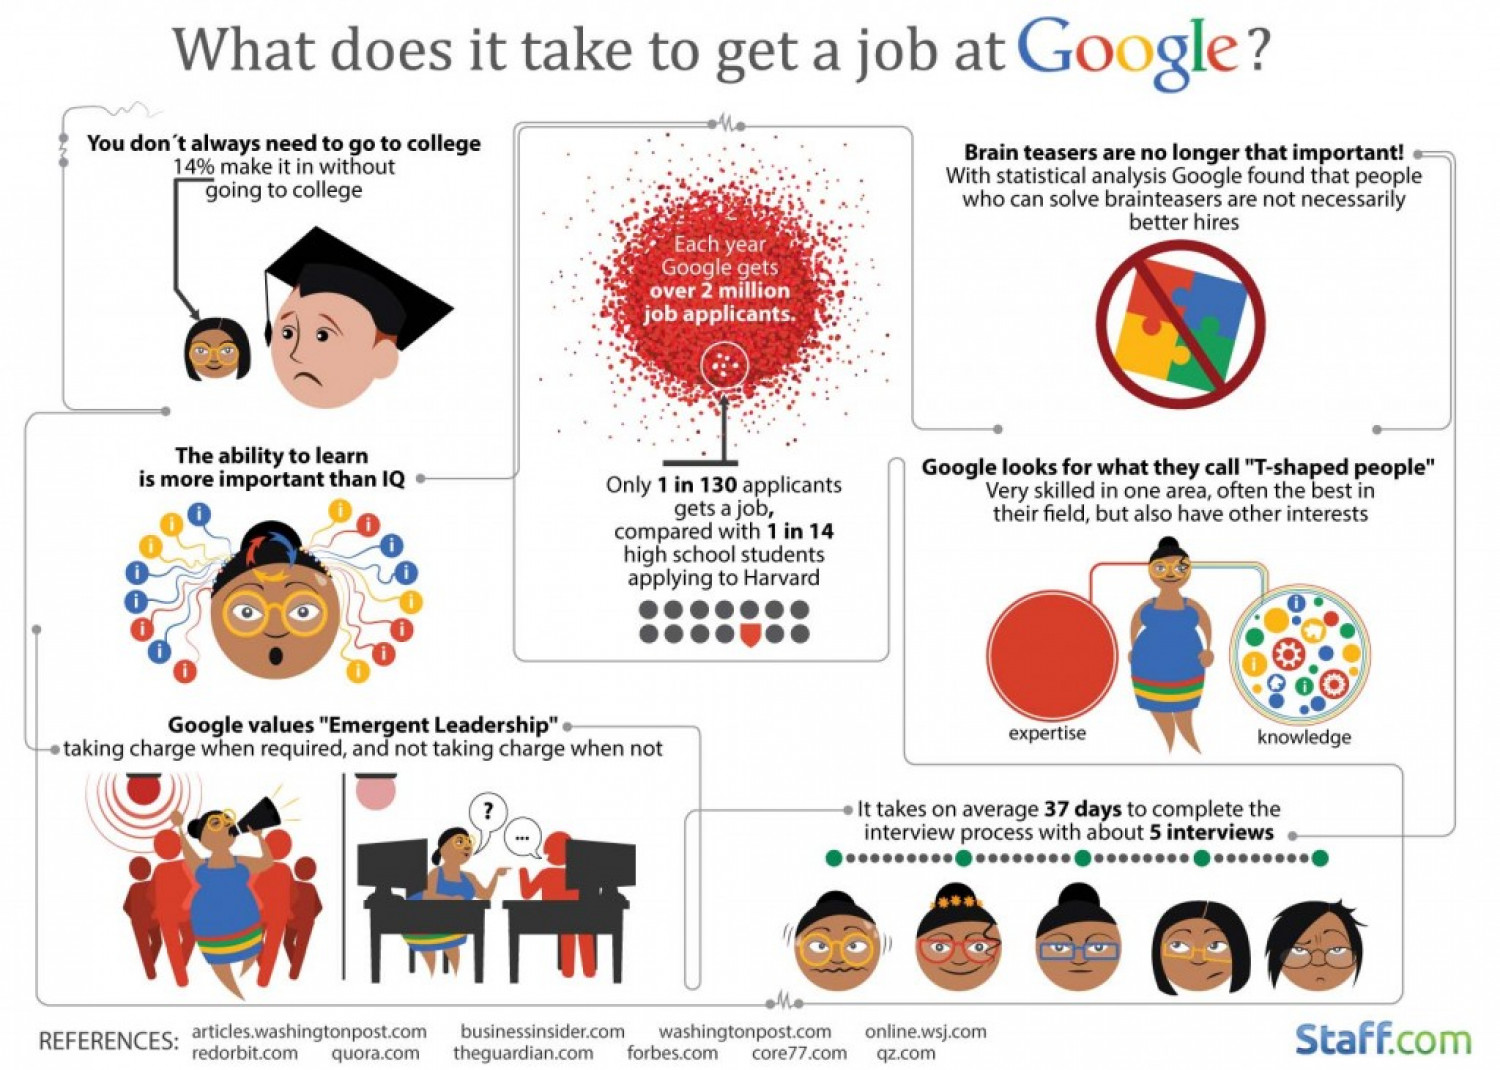 What Does It Take to Get a Job at Google? Infographic